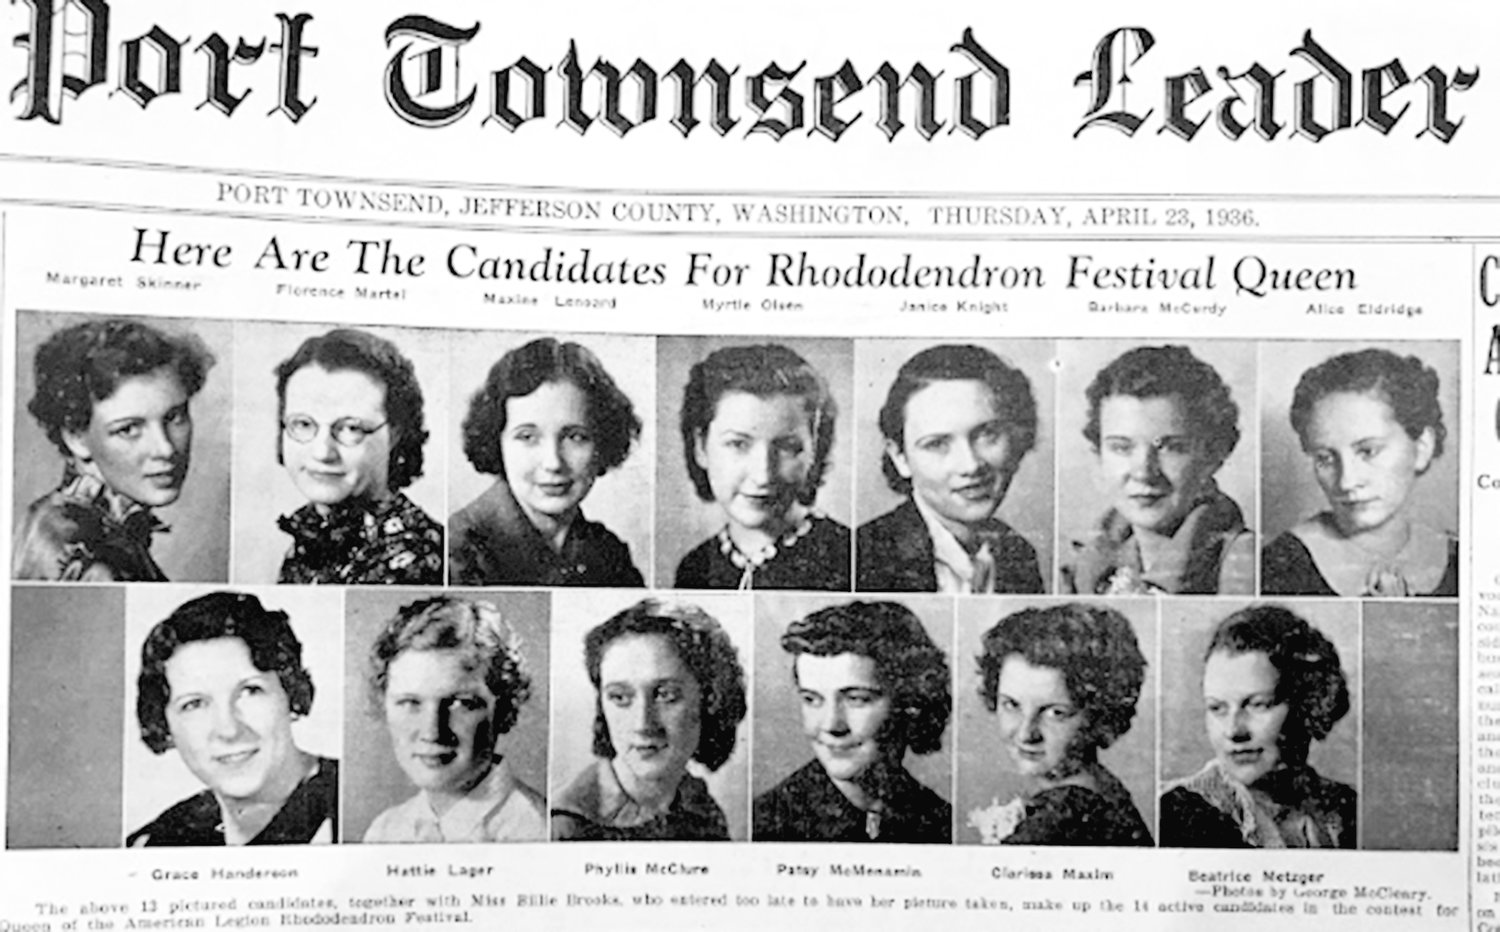 The Leader published photographs of the candidates for Rhododendron Festival Queen on the front page for many years, starting with the first festival in 1936.